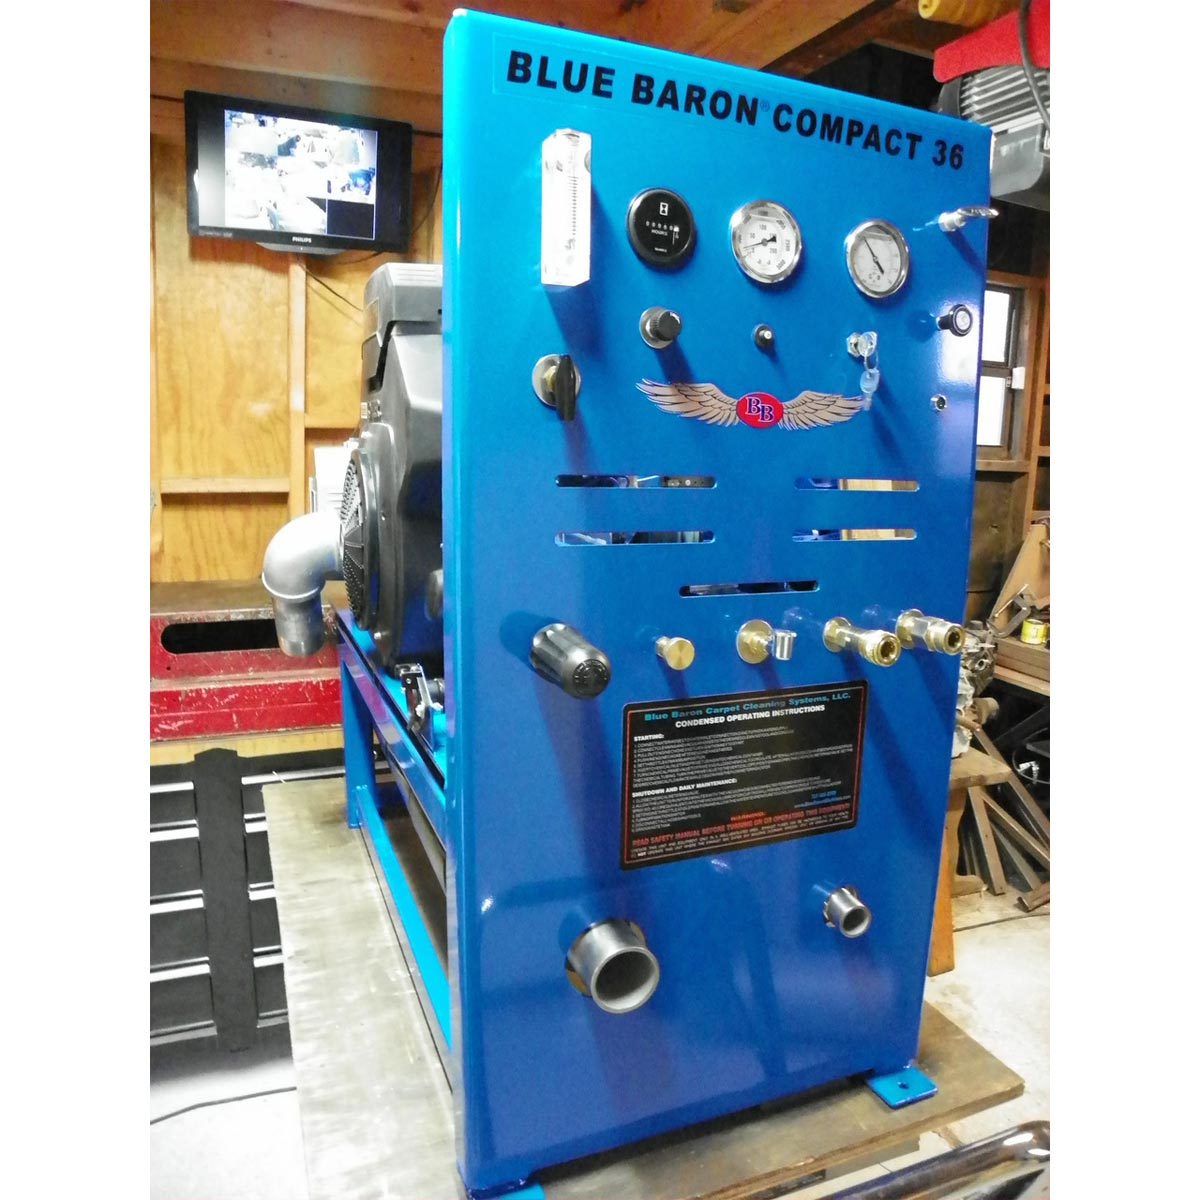 -Blue Baron Compact 36 Truckmount 23.5 Hp Belt Drive Deluxe Package (In Stock Today, Cash Priced) [Compact 36 Starter]